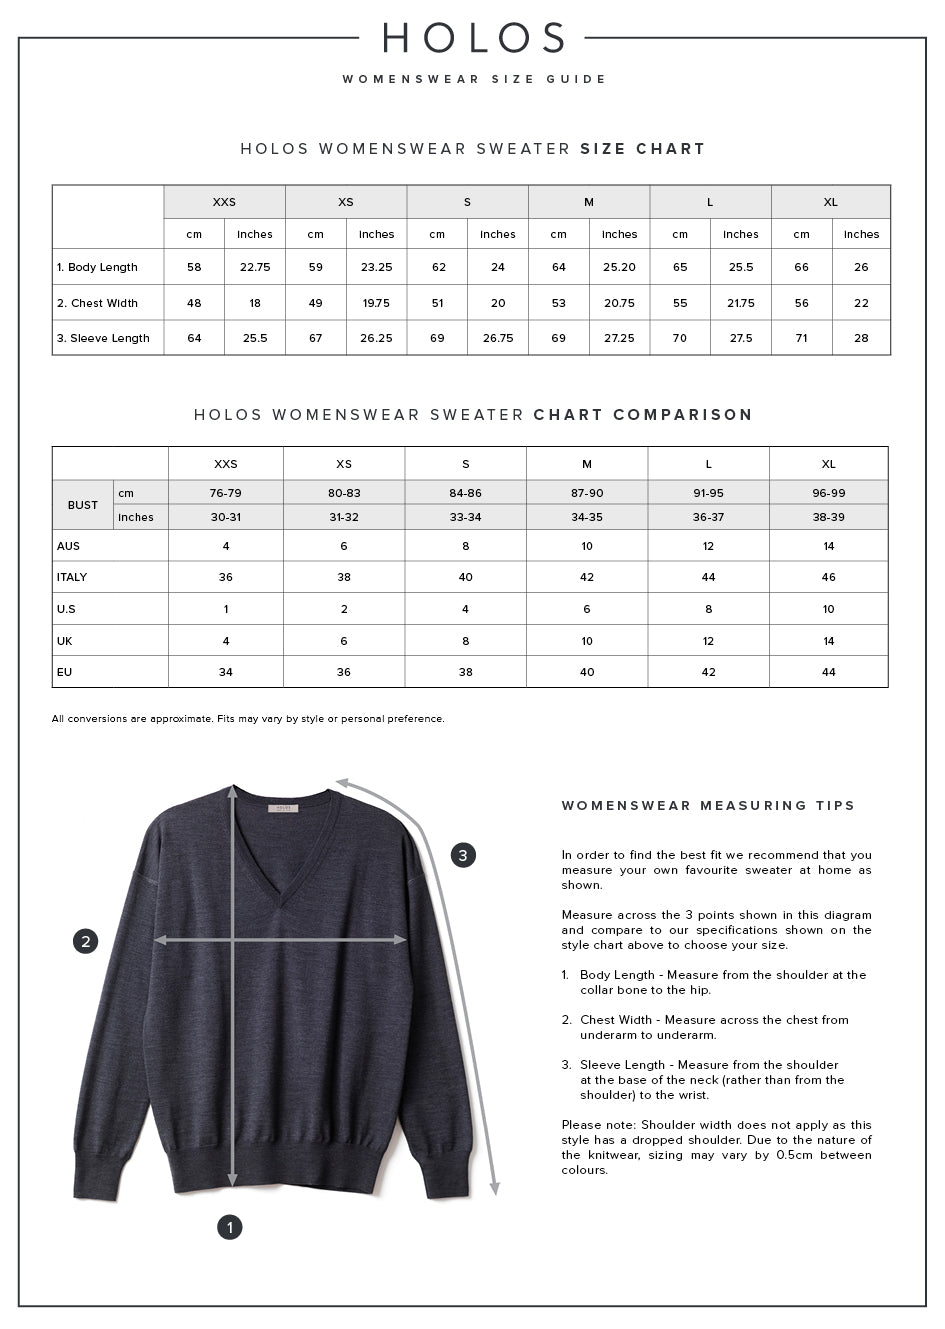 HOLOS Women's Sweater Size Guide